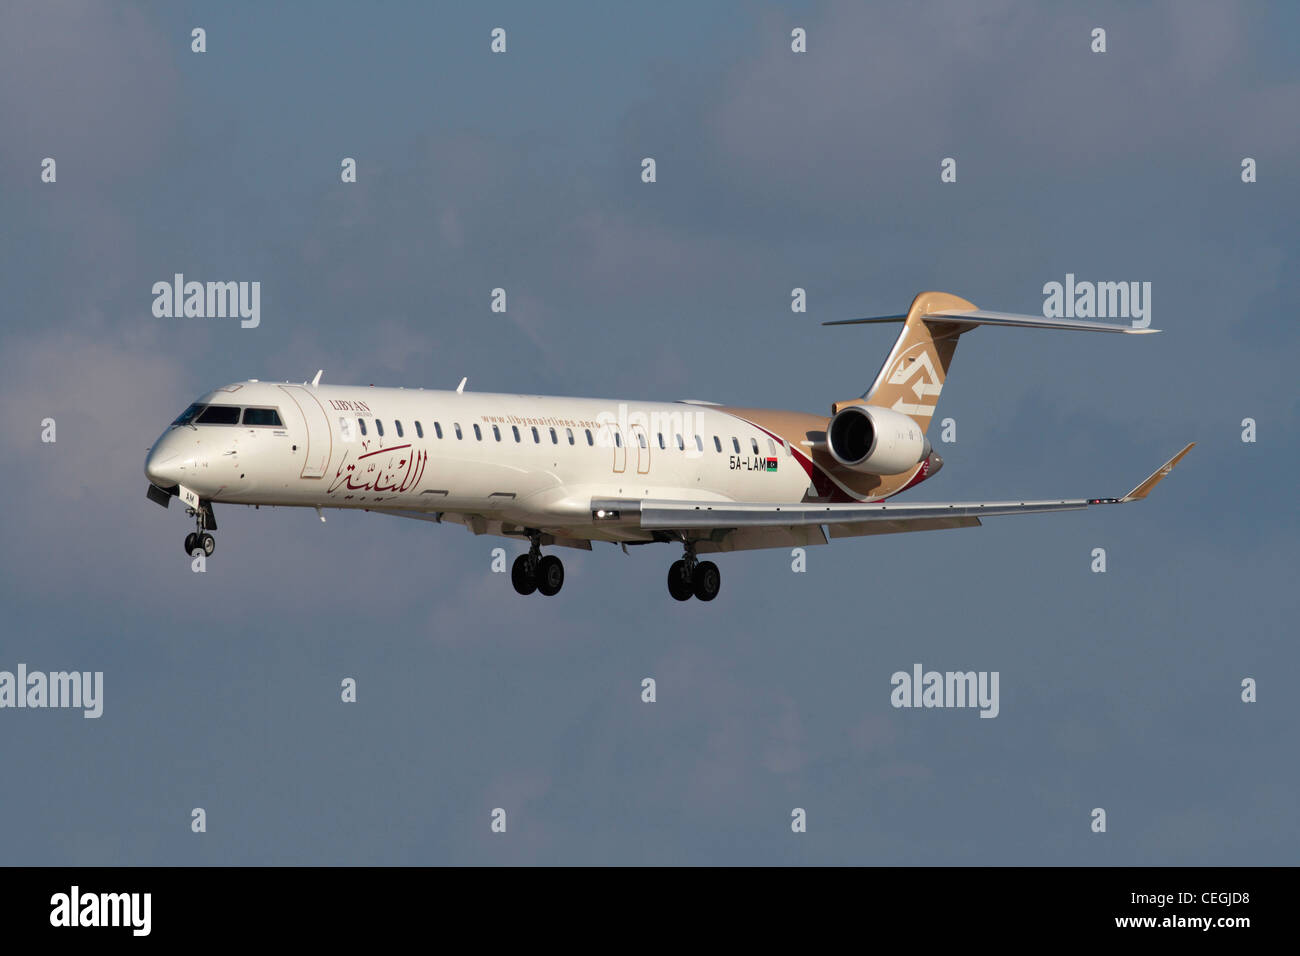 Libyan Airlines Bombardier CRJ900 with the post-revolutionary flag on the rear fuselage - Stock Image